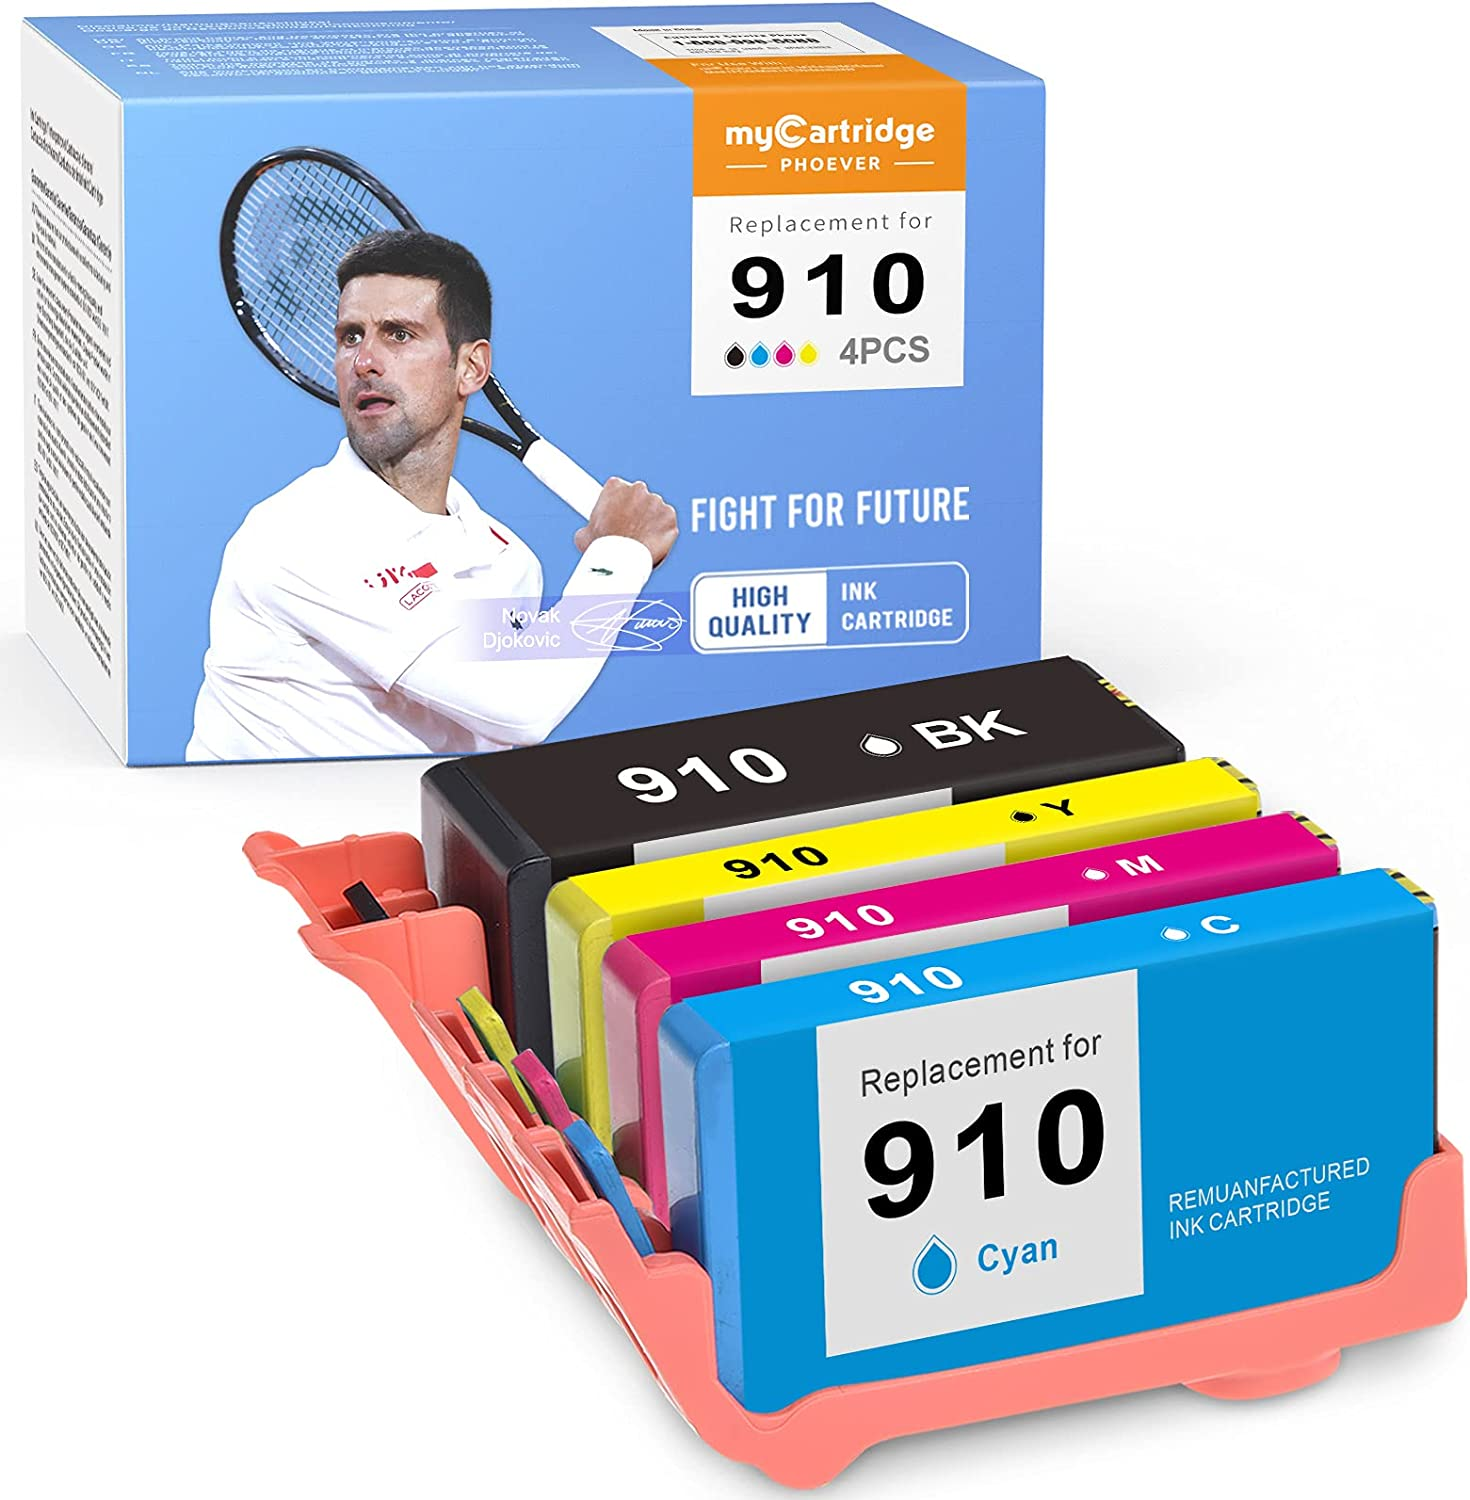 myCartridge PHOEVER Remanufactured Ink Cartridge Replacement for HP 910 910XL for OfficeJet Pro 8022 8020 8025 8028 8035 8035e 8025e 8015 8031 8024 8033 8034 8018 (Black Cyan Magenta Yellow, 4-Pack)